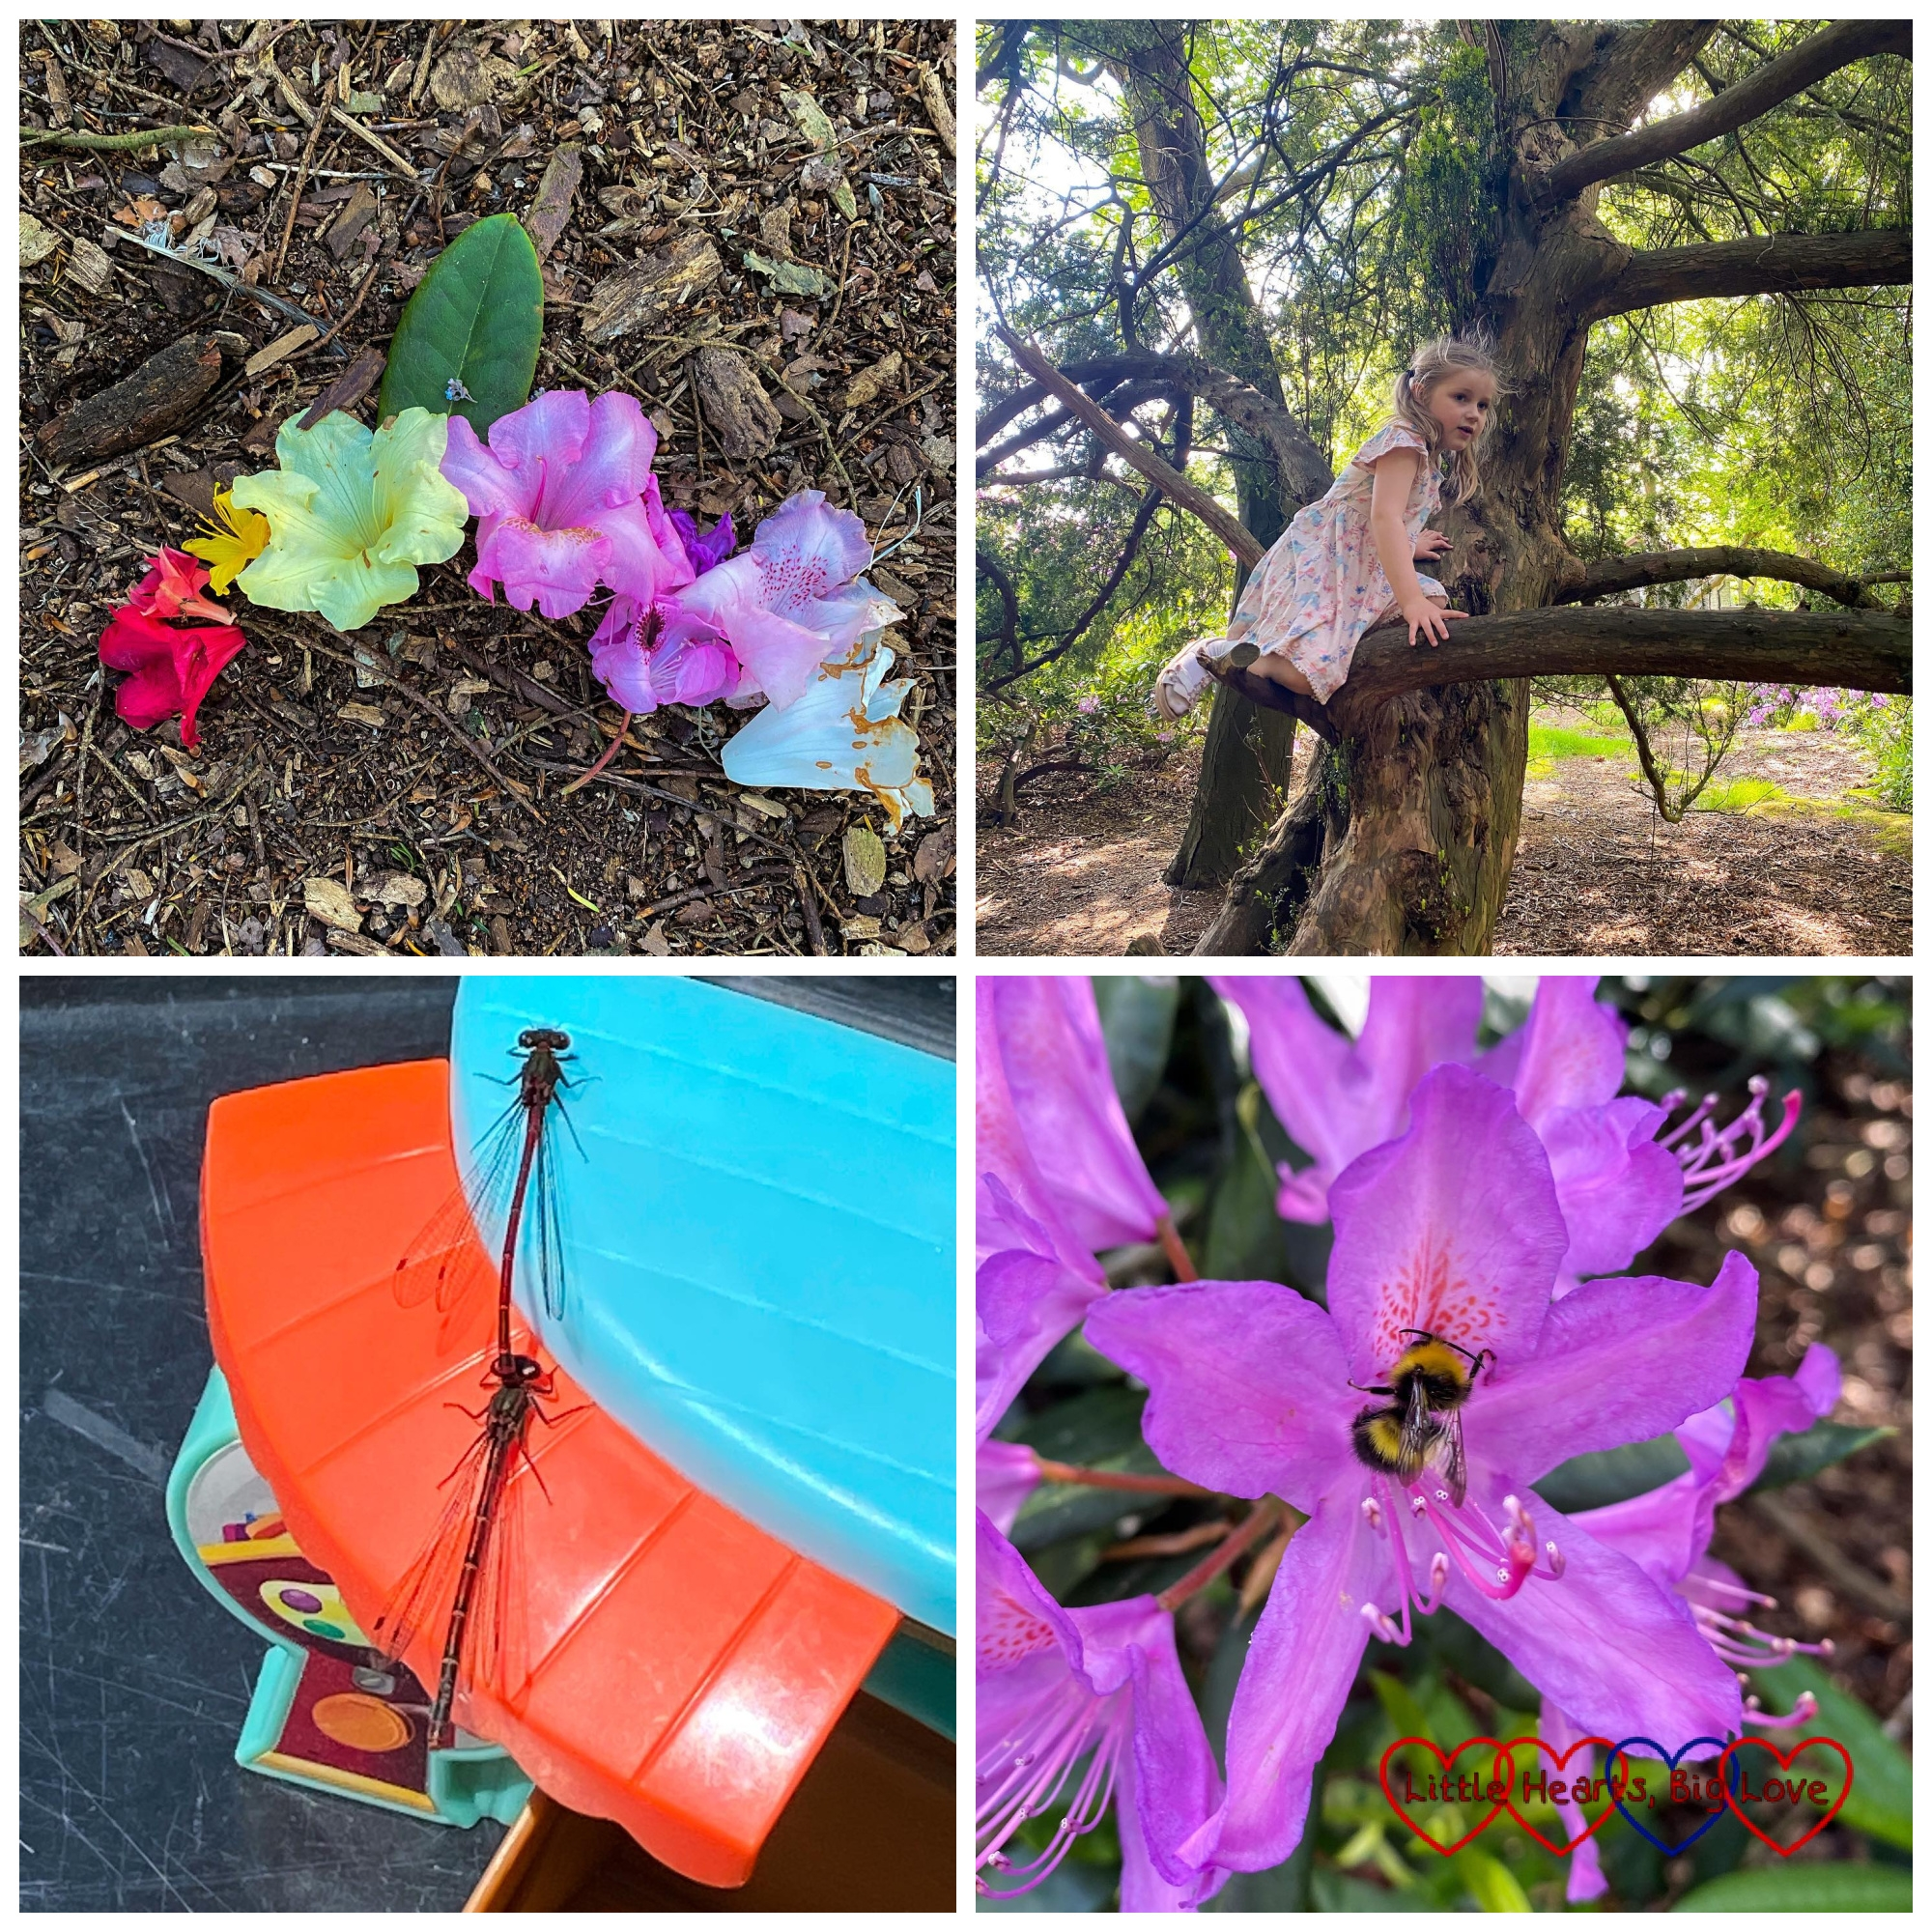 A rainbow of rhododendron flowers; Sophie climbing a tree; two damselflies on top of a plastic toy; a bee in a purple rhododendron flower